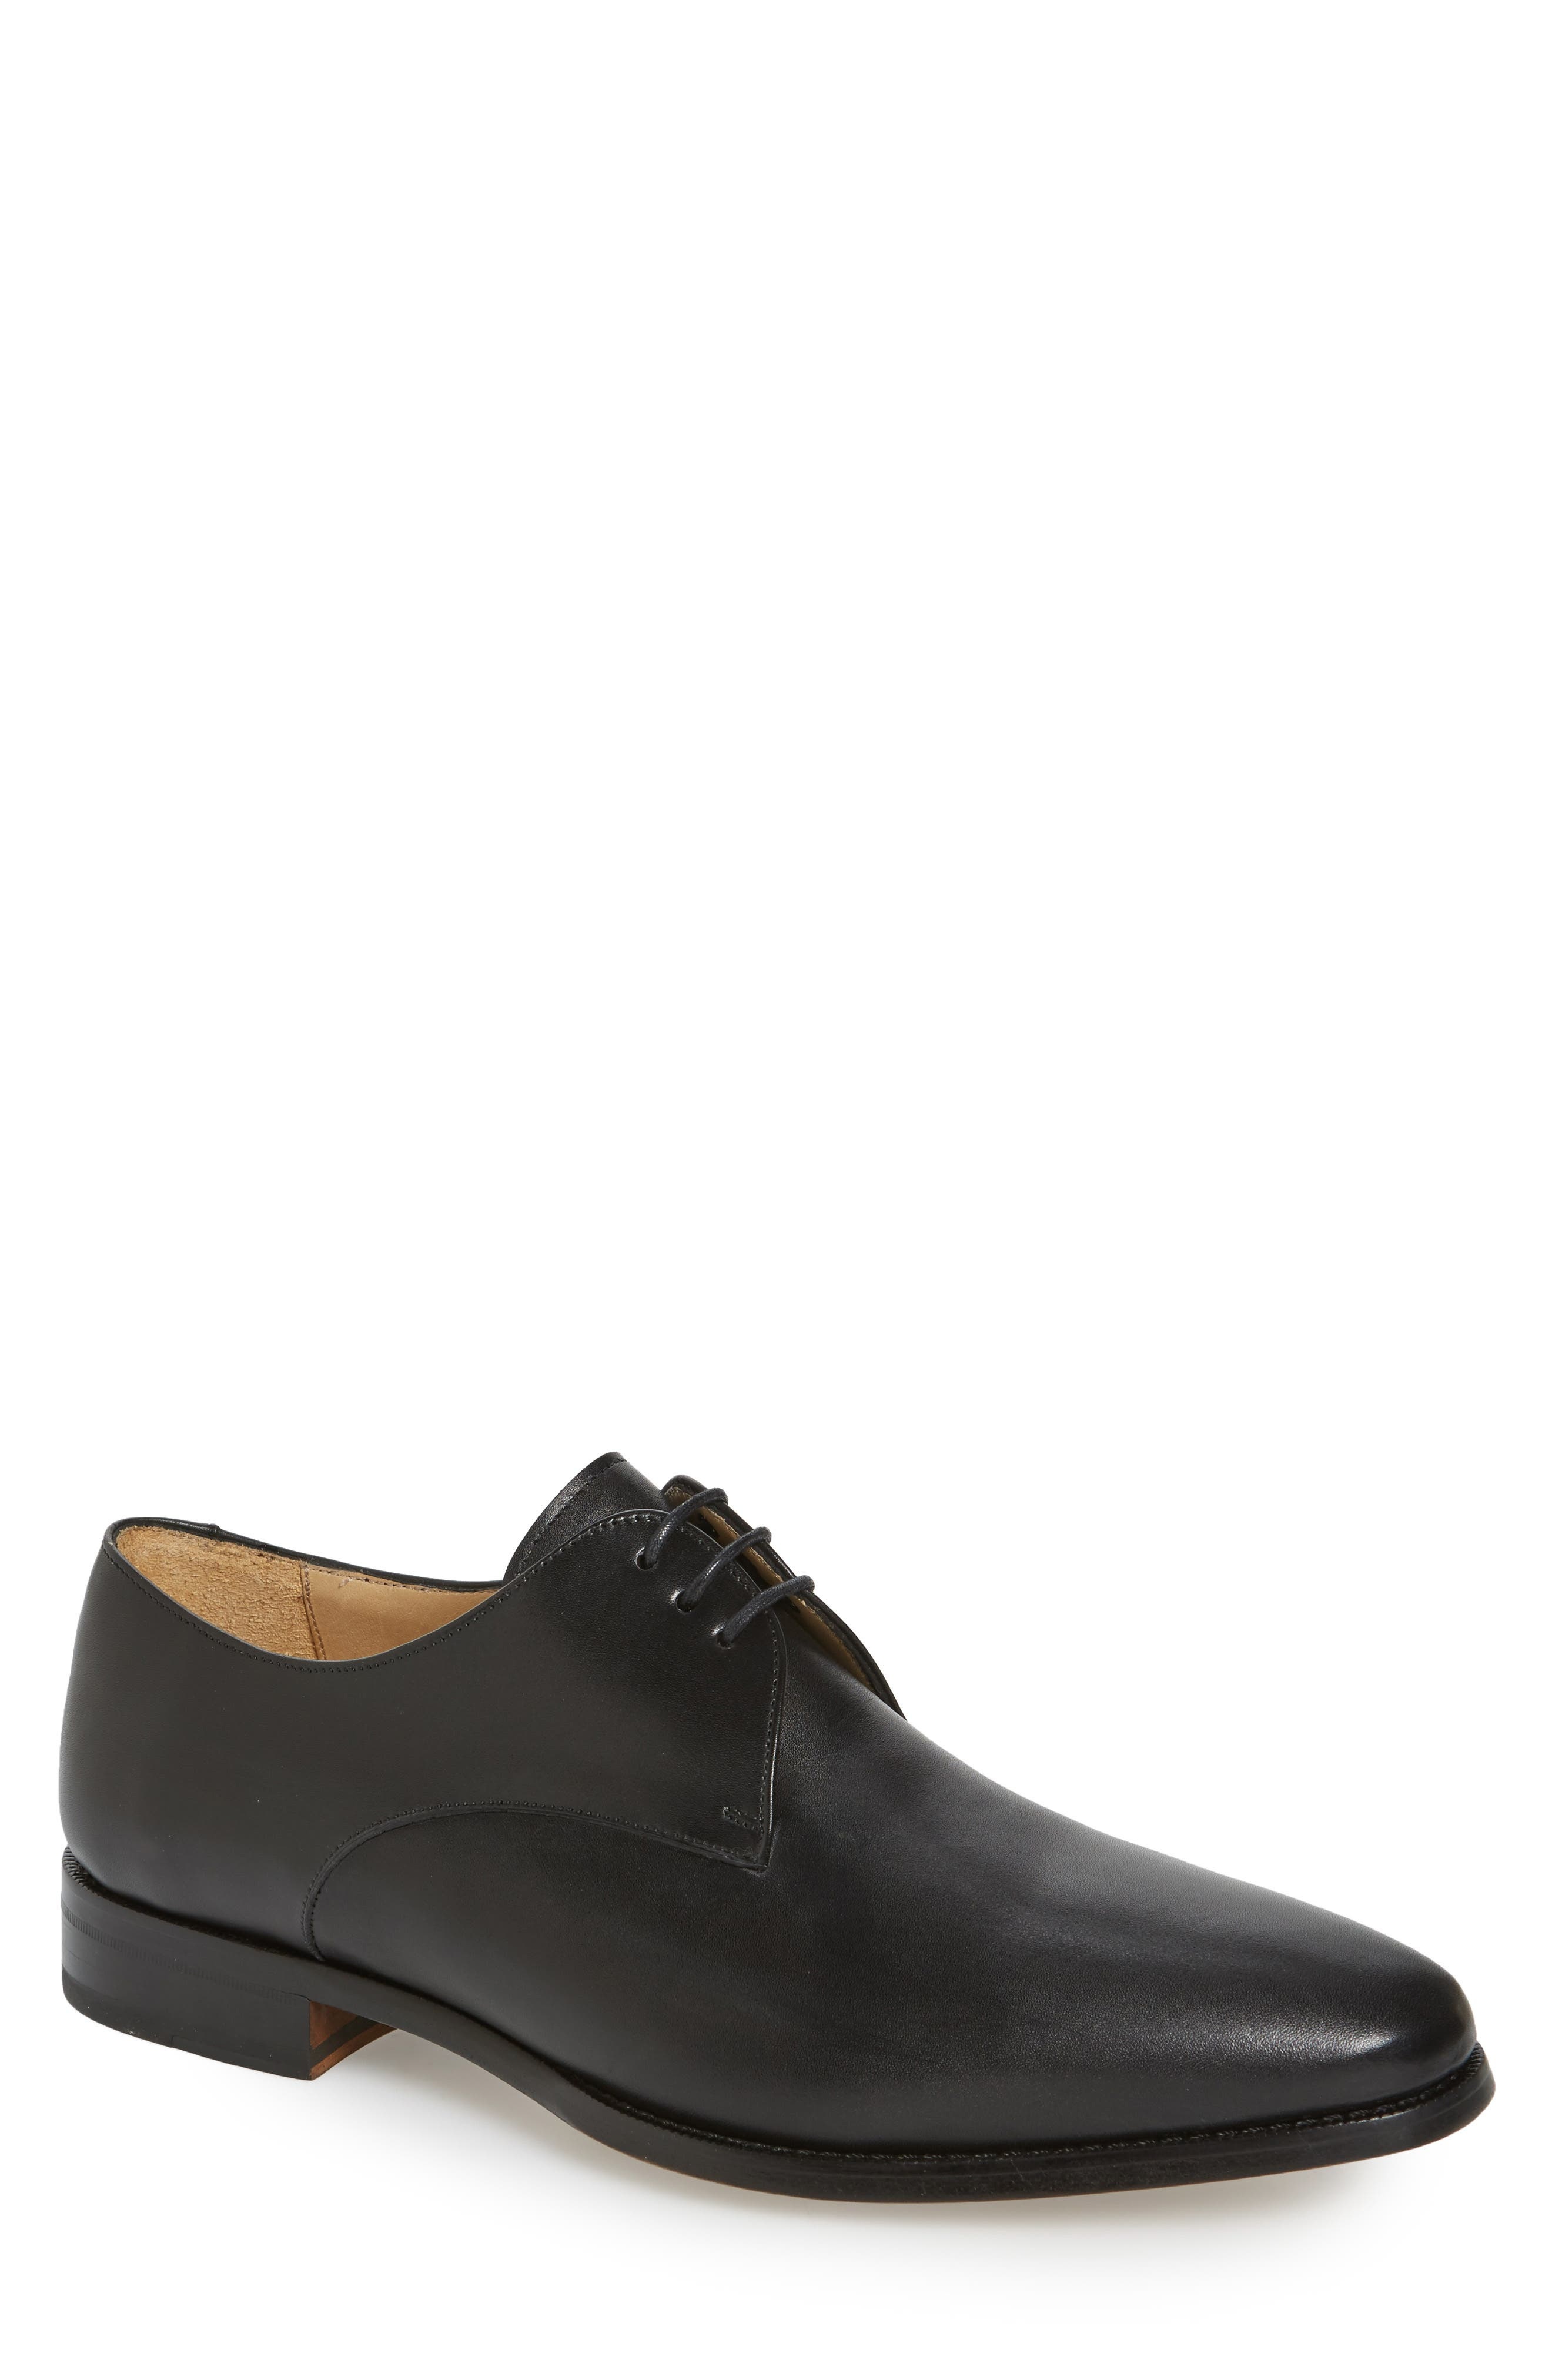 Alternate Image 1 Selected - Jack Erwin Mitch Plain Toe Derby (Men)